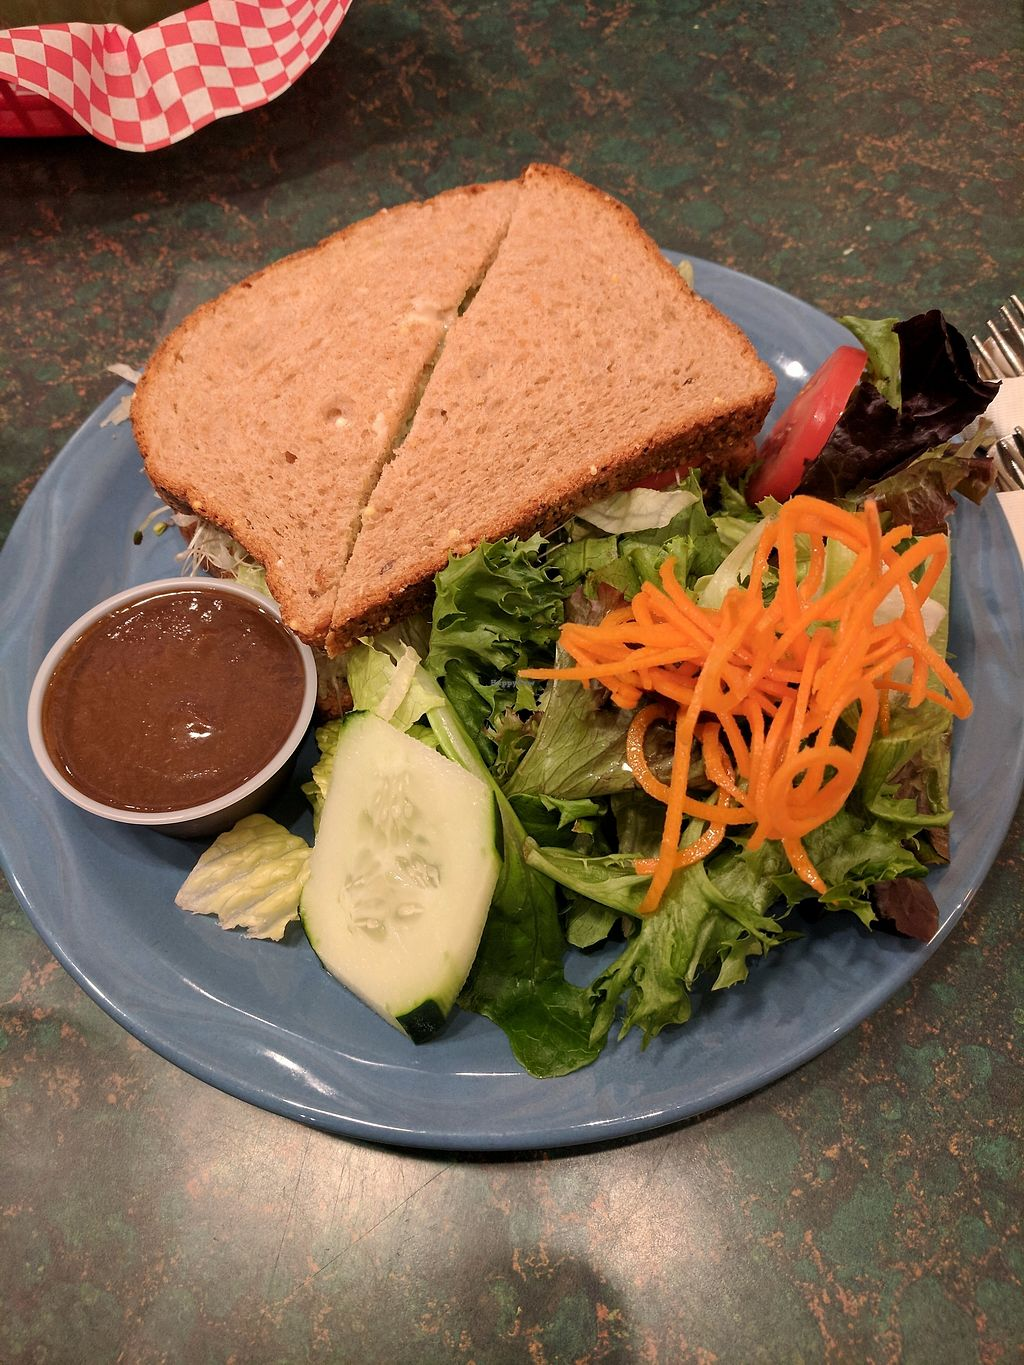 """Photo of The Stew Pot  by <a href=""""/members/profile/eee135"""">eee135</a> <br/>Avocado sandwich with sprouts  <br/> September 9, 2017  - <a href='/contact/abuse/image/100575/302409'>Report</a>"""